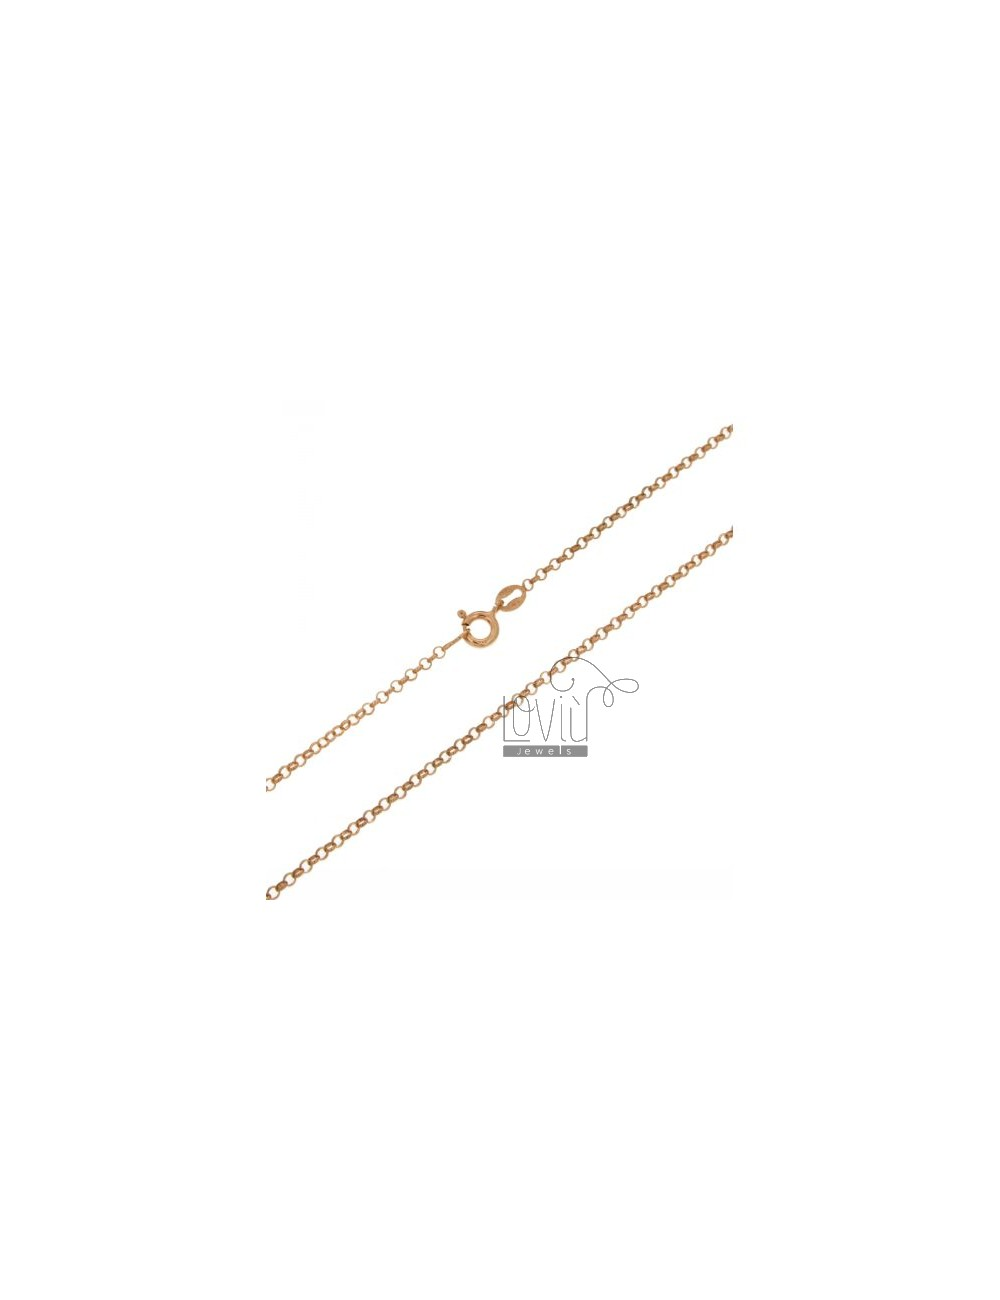 ROLO CHAIN 2 MM ROSE GOLD PLATED 40 CM IN AG TIT 925 ‰